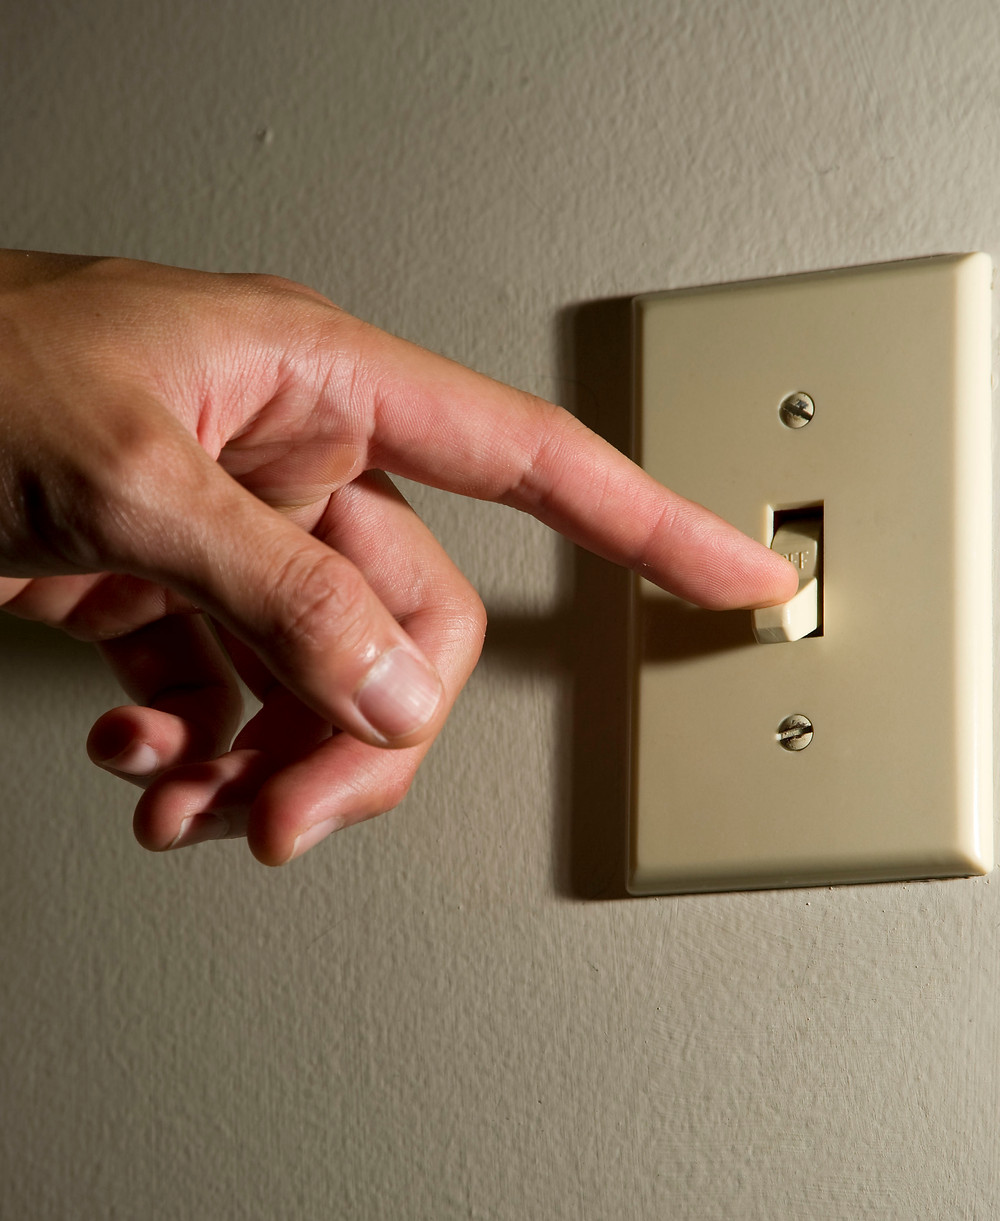 Reduce Emissions | Hand turning off lightswitch